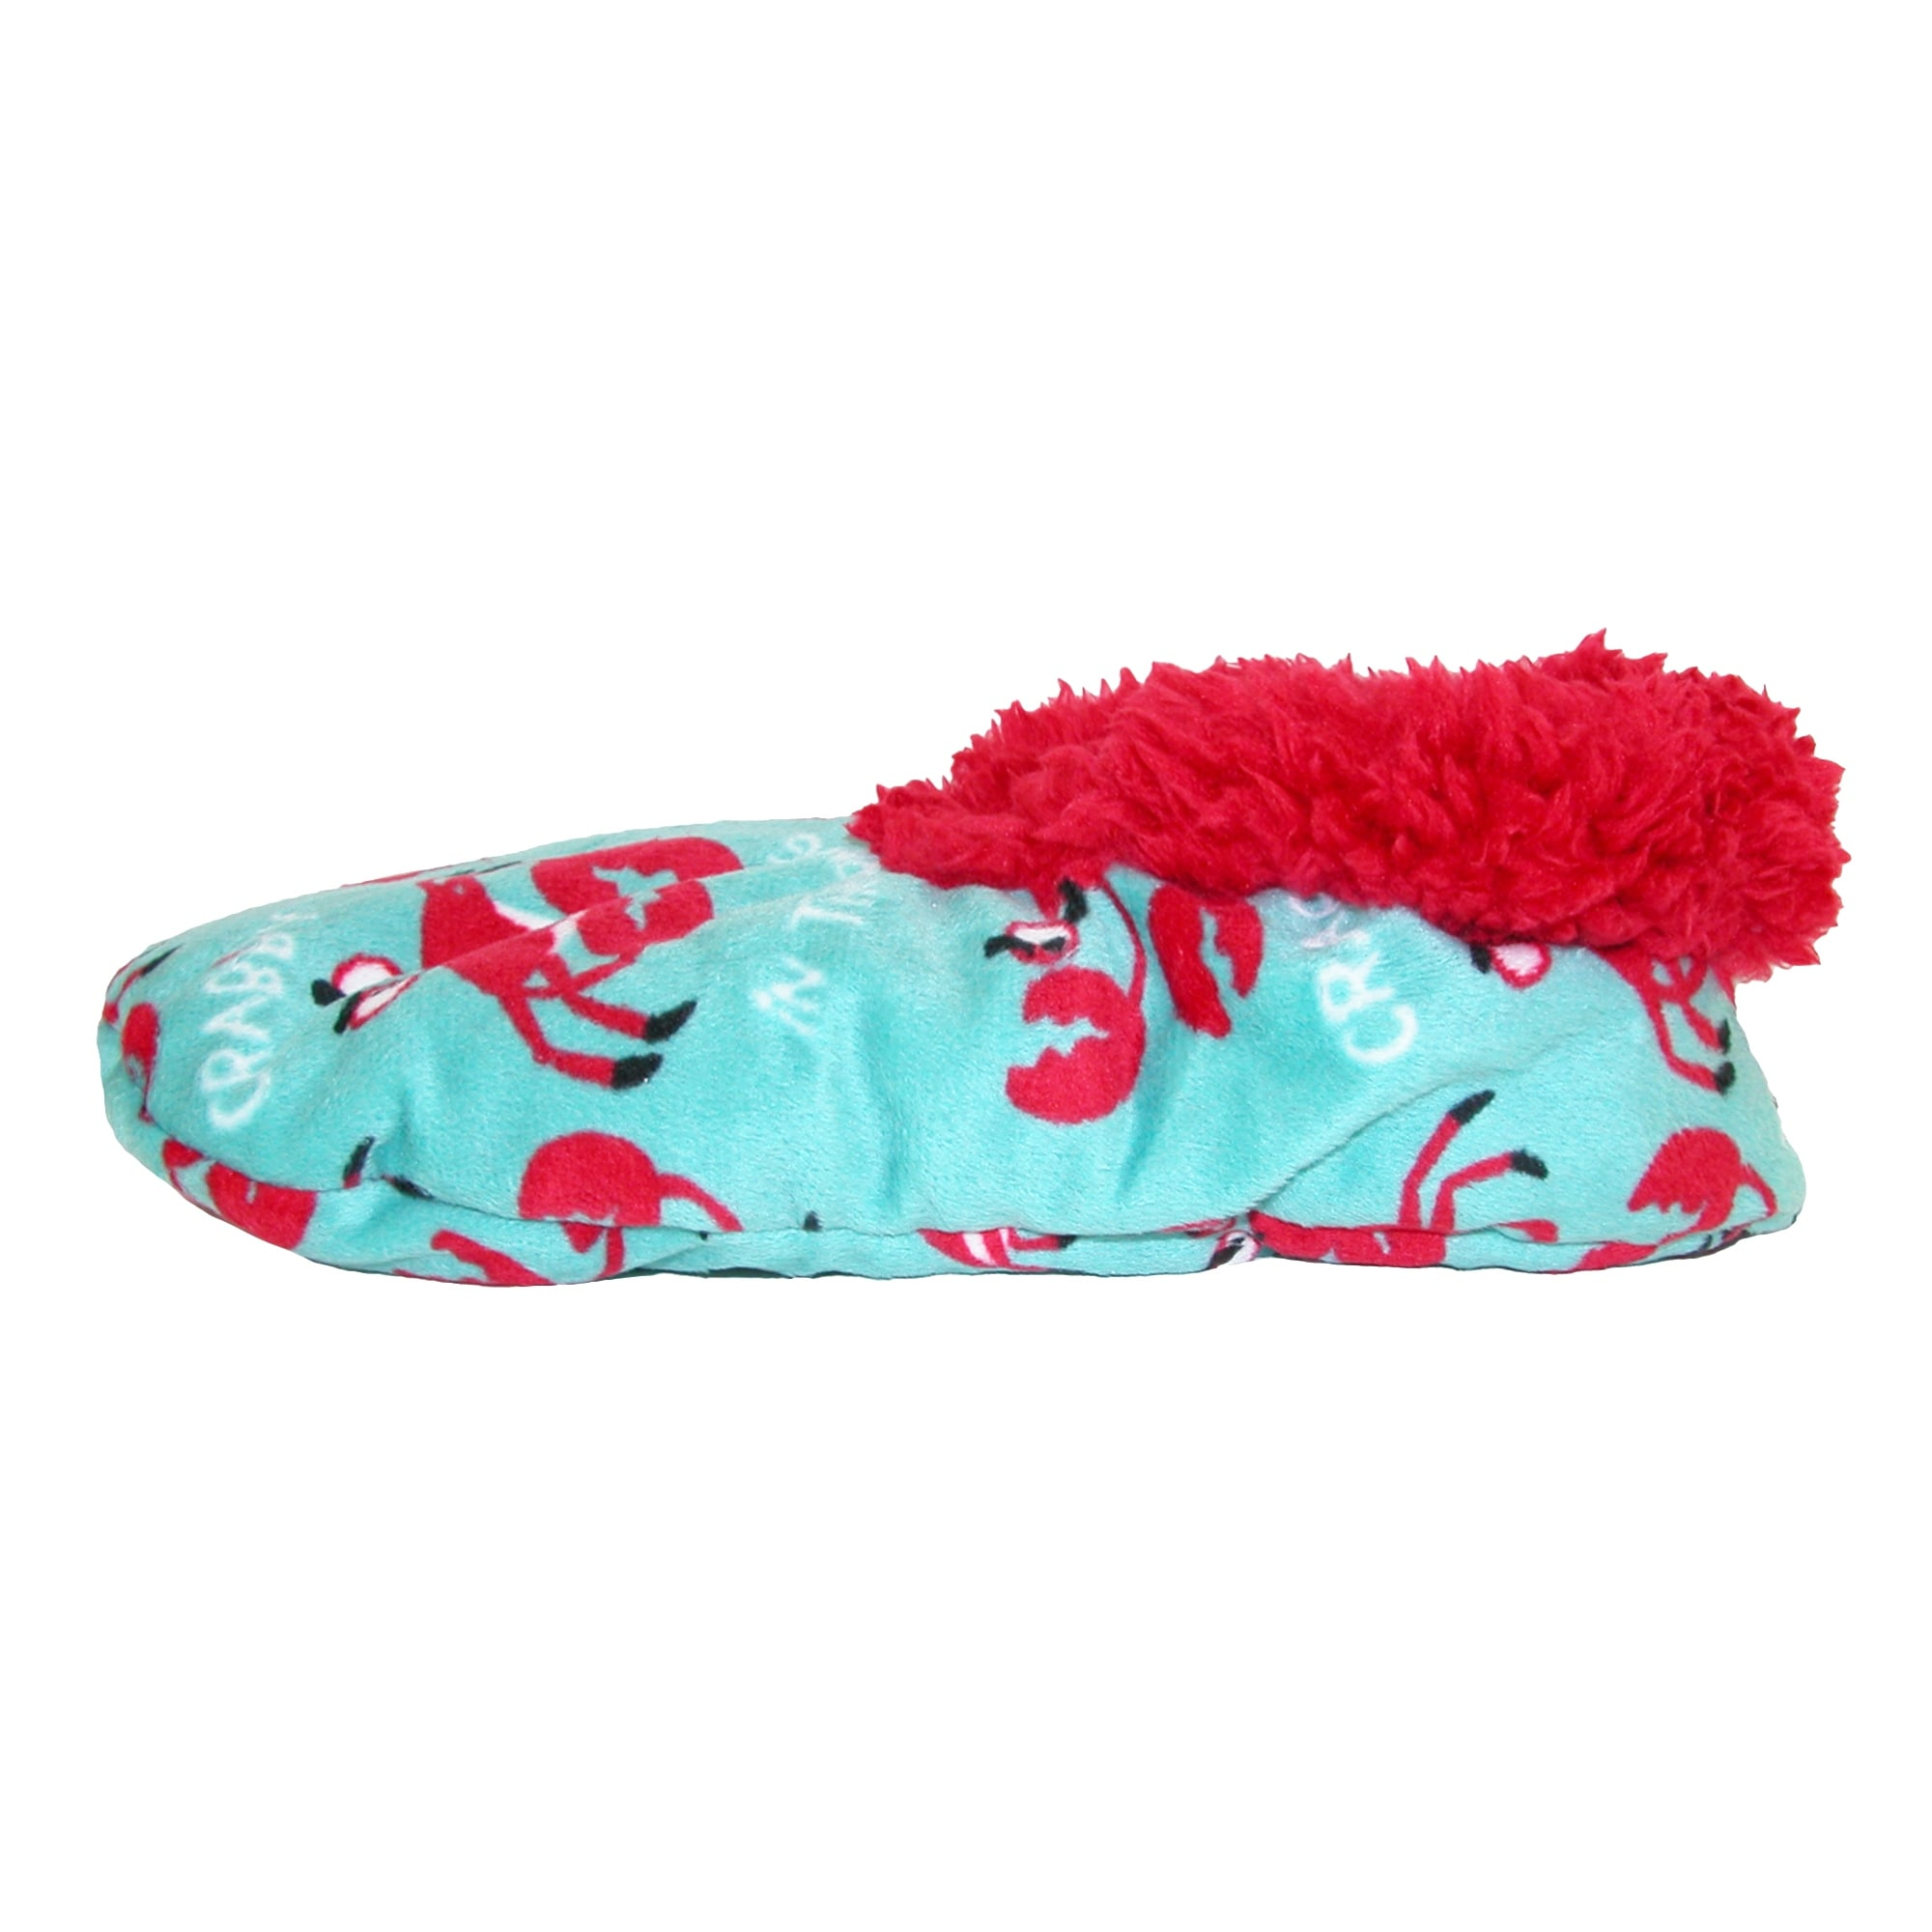 4cafb8f55af6 Shop Lazy One Women s Crabby In The Morning Print Fuzzy Feet Slippers -  Free Shipping On Orders Over  45 - Overstock - 14281591